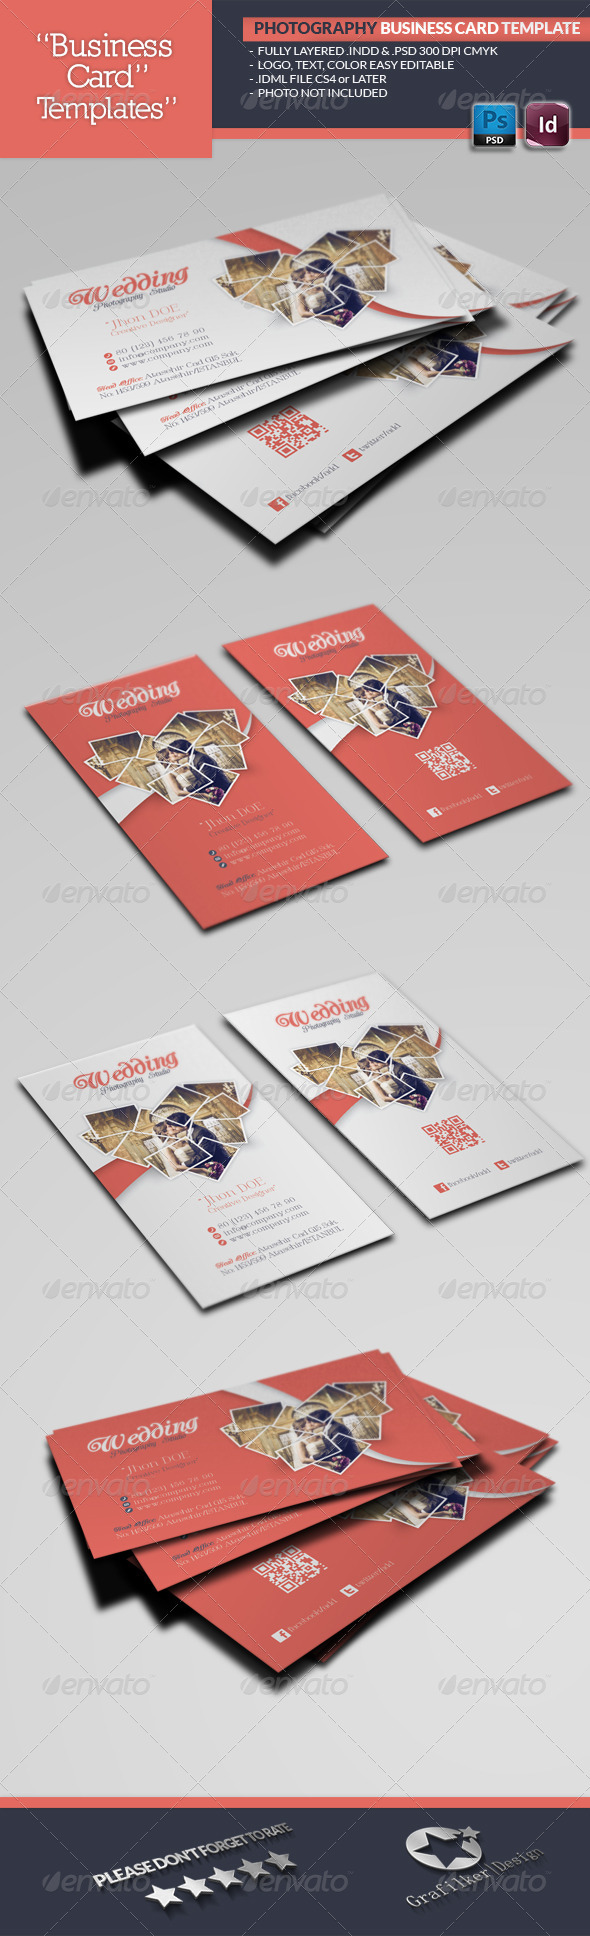 GraphicRiver Photography Business Card Template 5057132